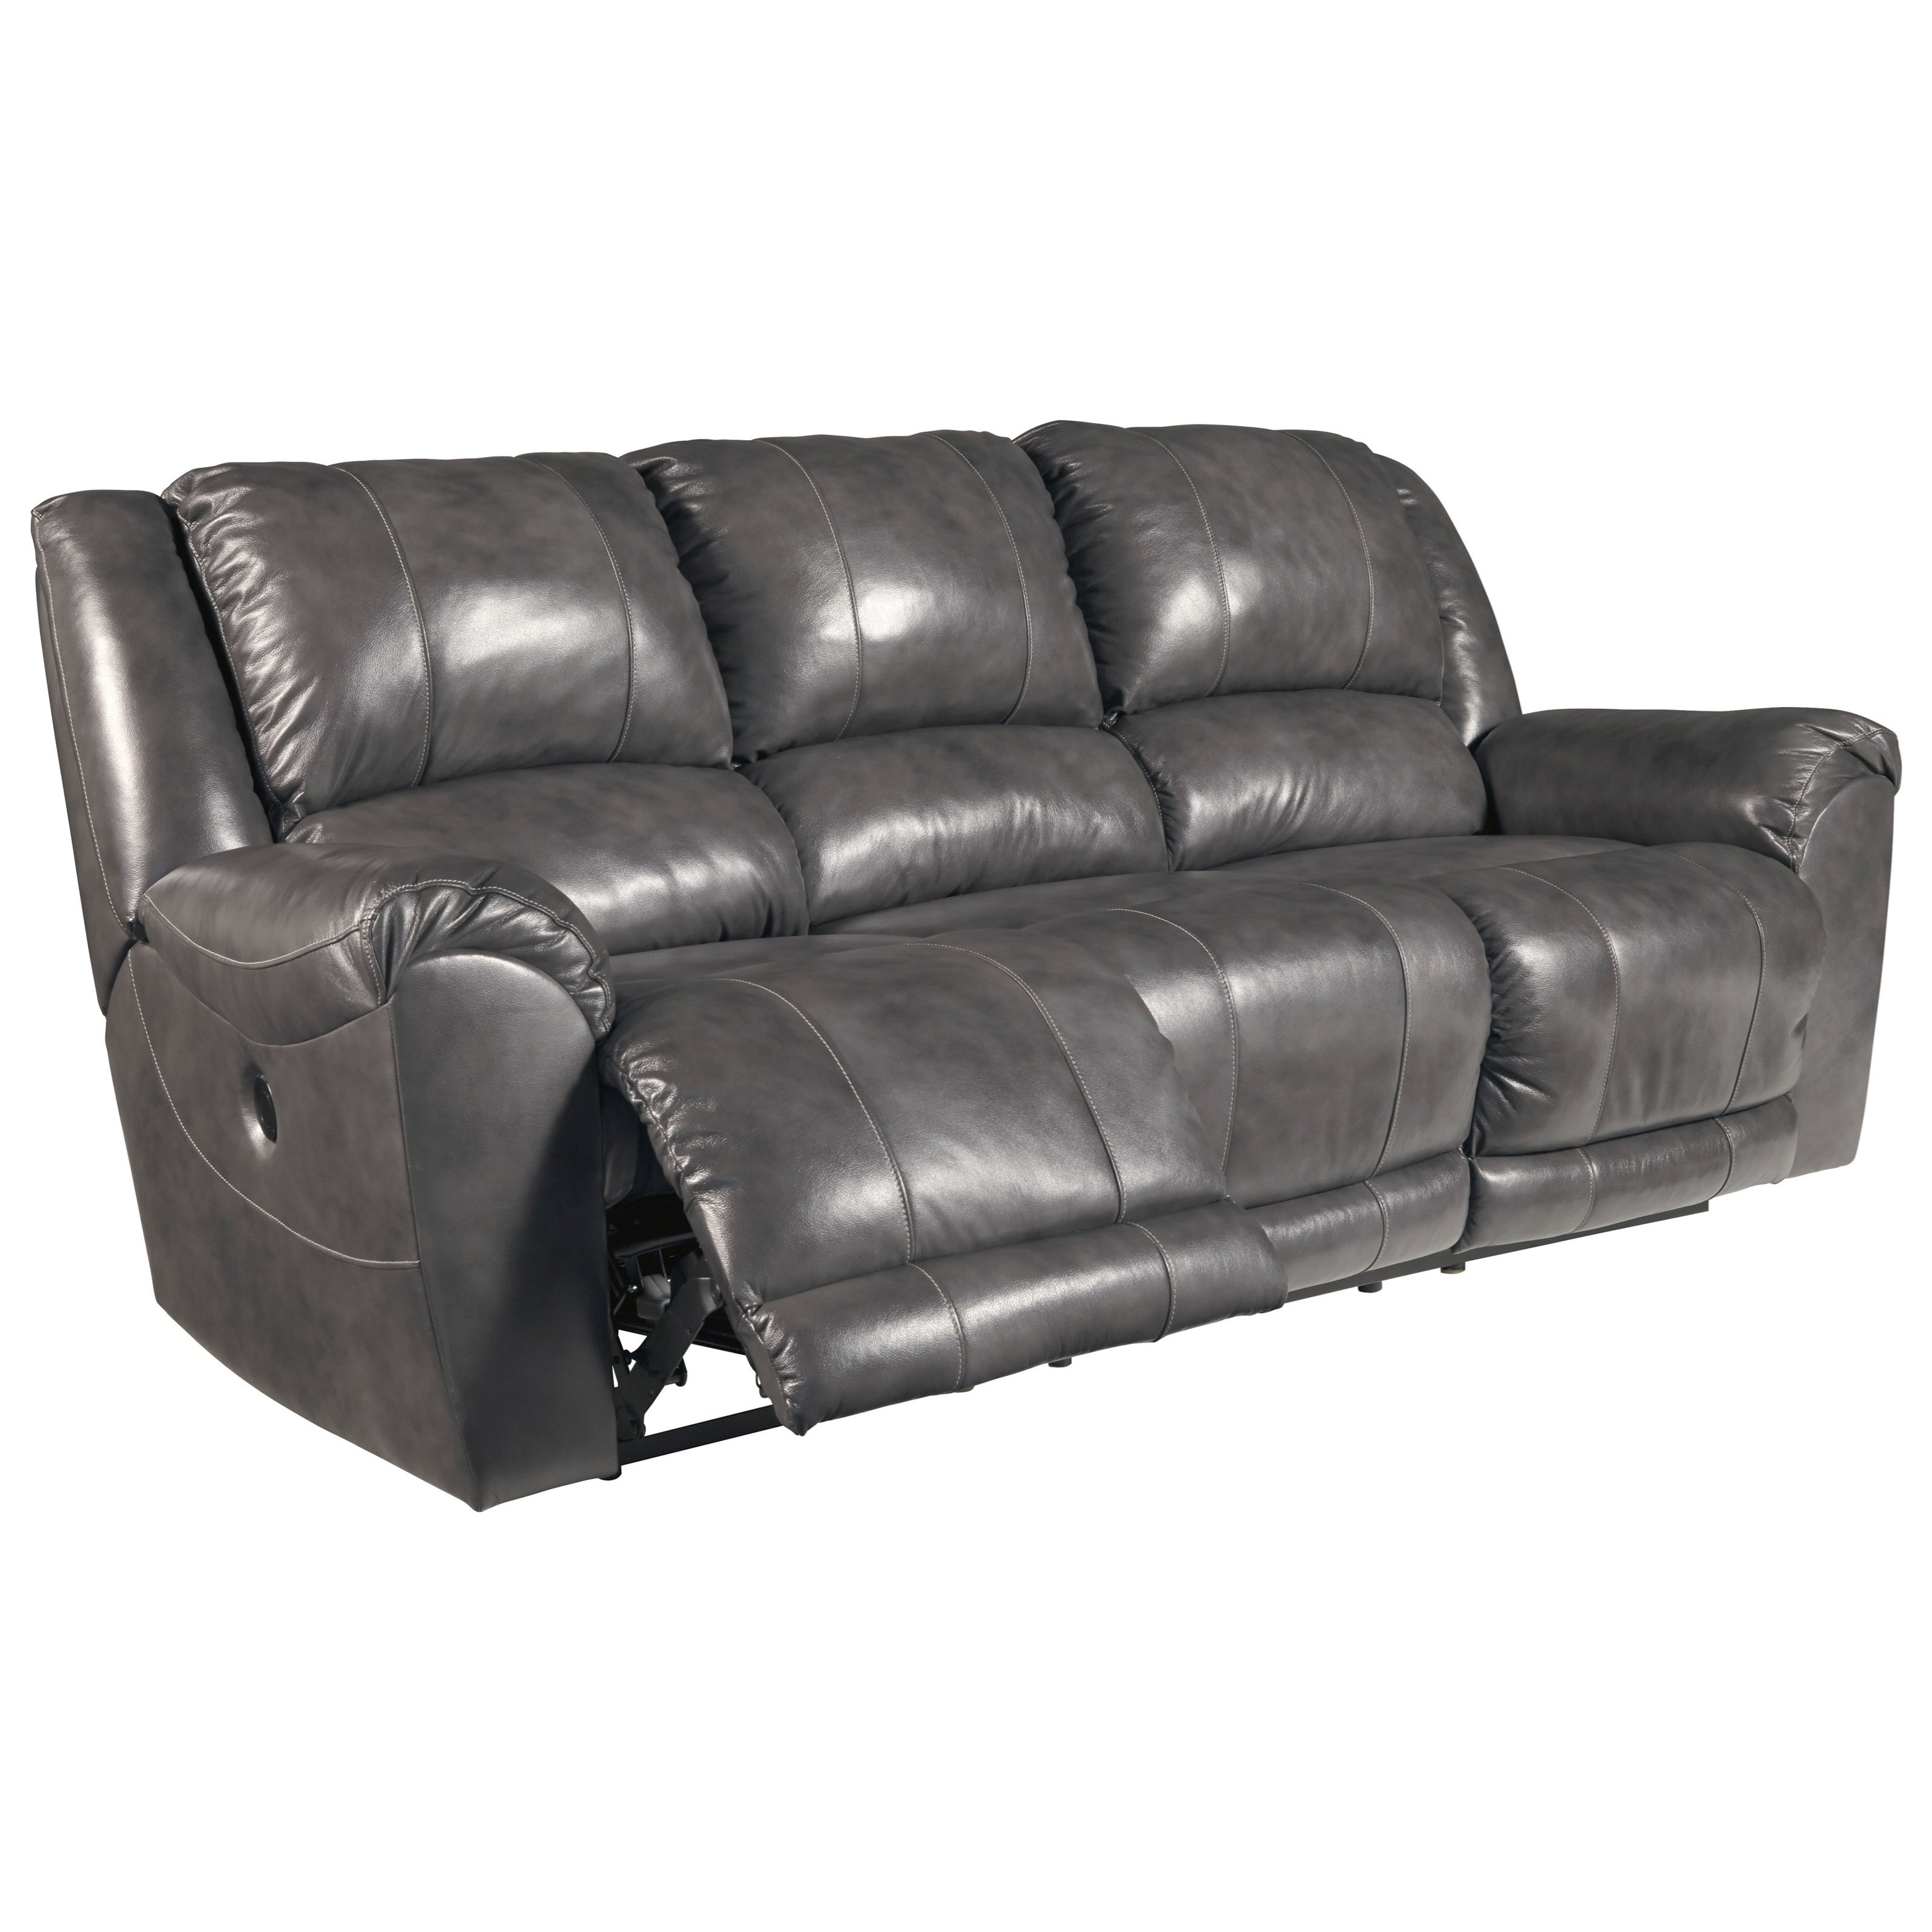 Can You Buy Ashley Furniture Online: Signature Design By Ashley Persiphone 6070187 Leather